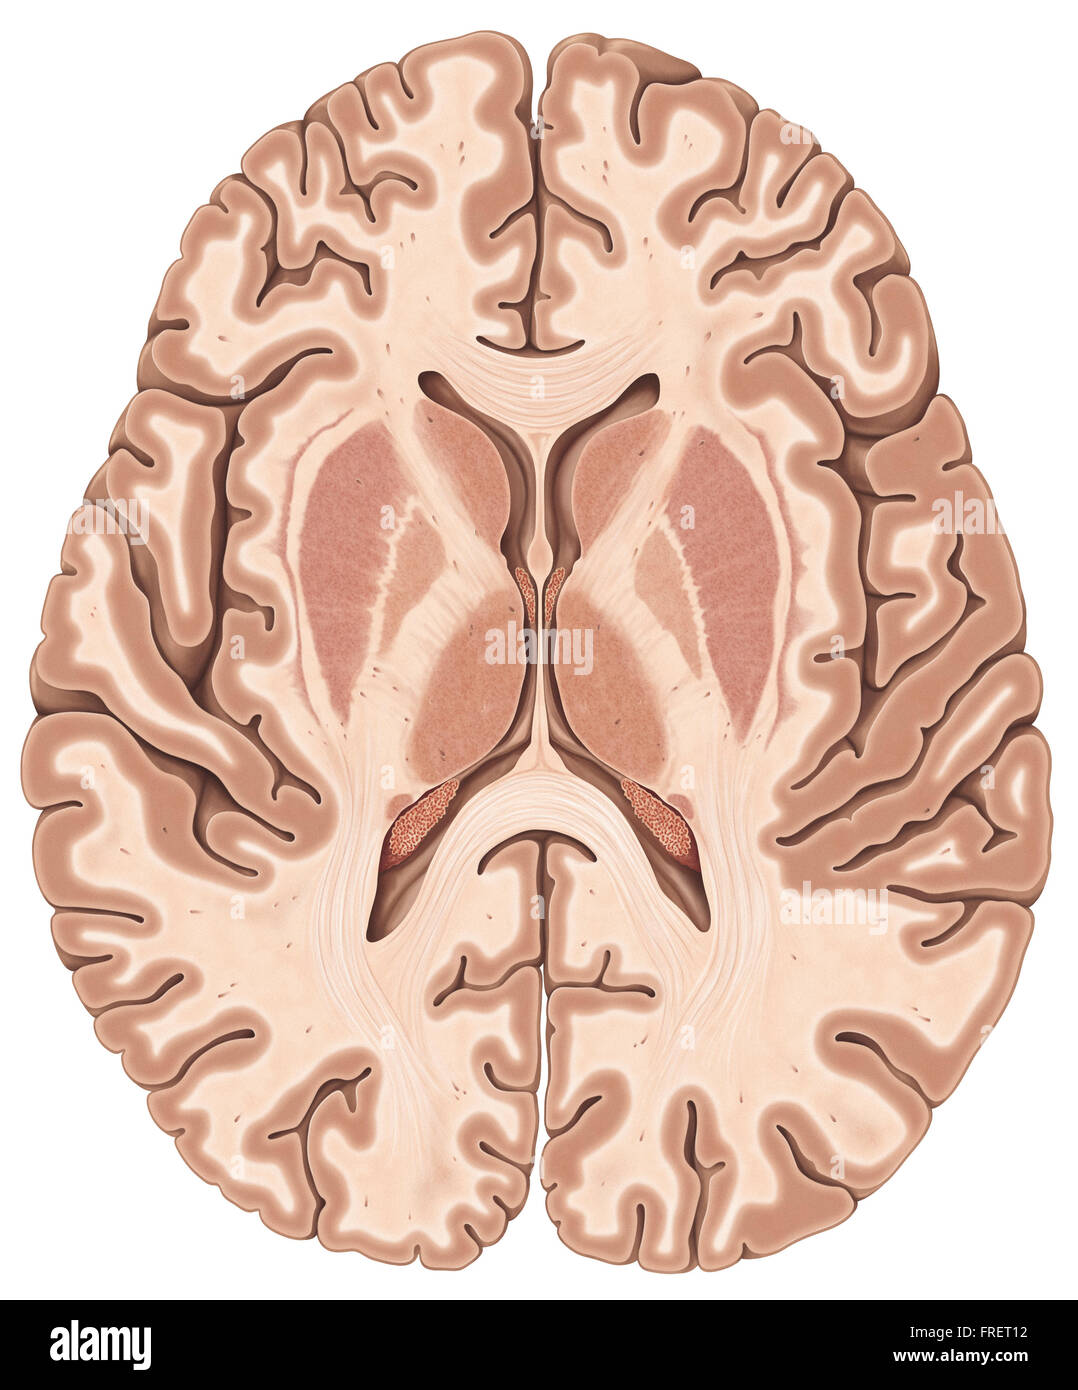 Human Brain Cut Out Stock Images Pictures Alamy